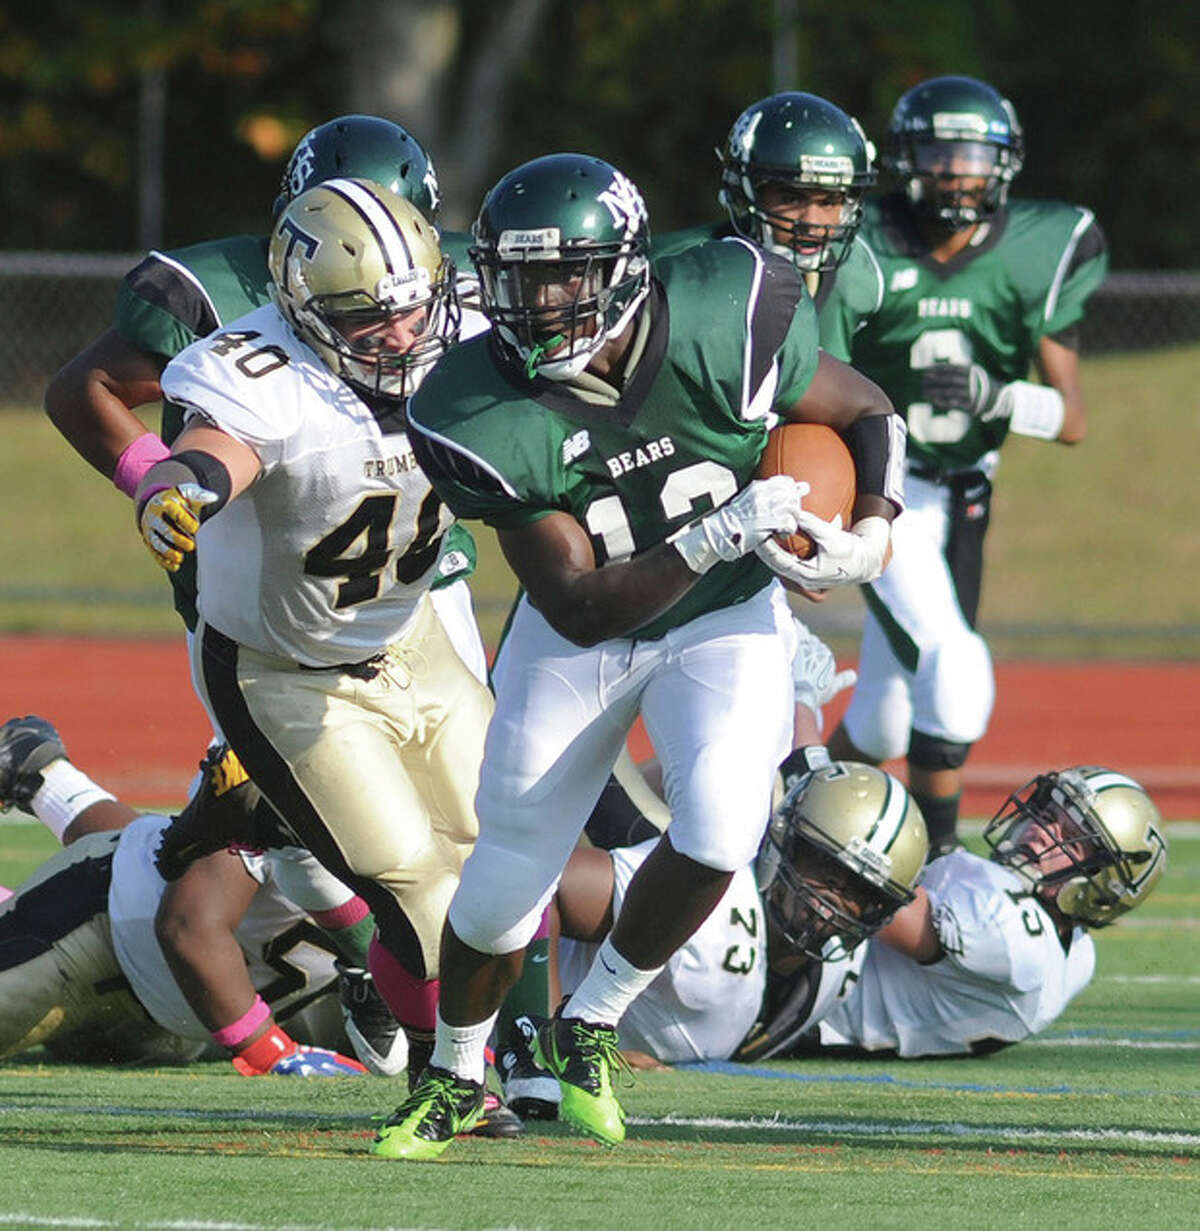 Hour photo/John Nash Under a bevy of eyes watching him, Norwalk's Clifford Joseph, center, runs away from blockers and tacklers alike while gaining some ground in the first quarter of Saturday's game against Trumbull at Testa Field in Norwalk.